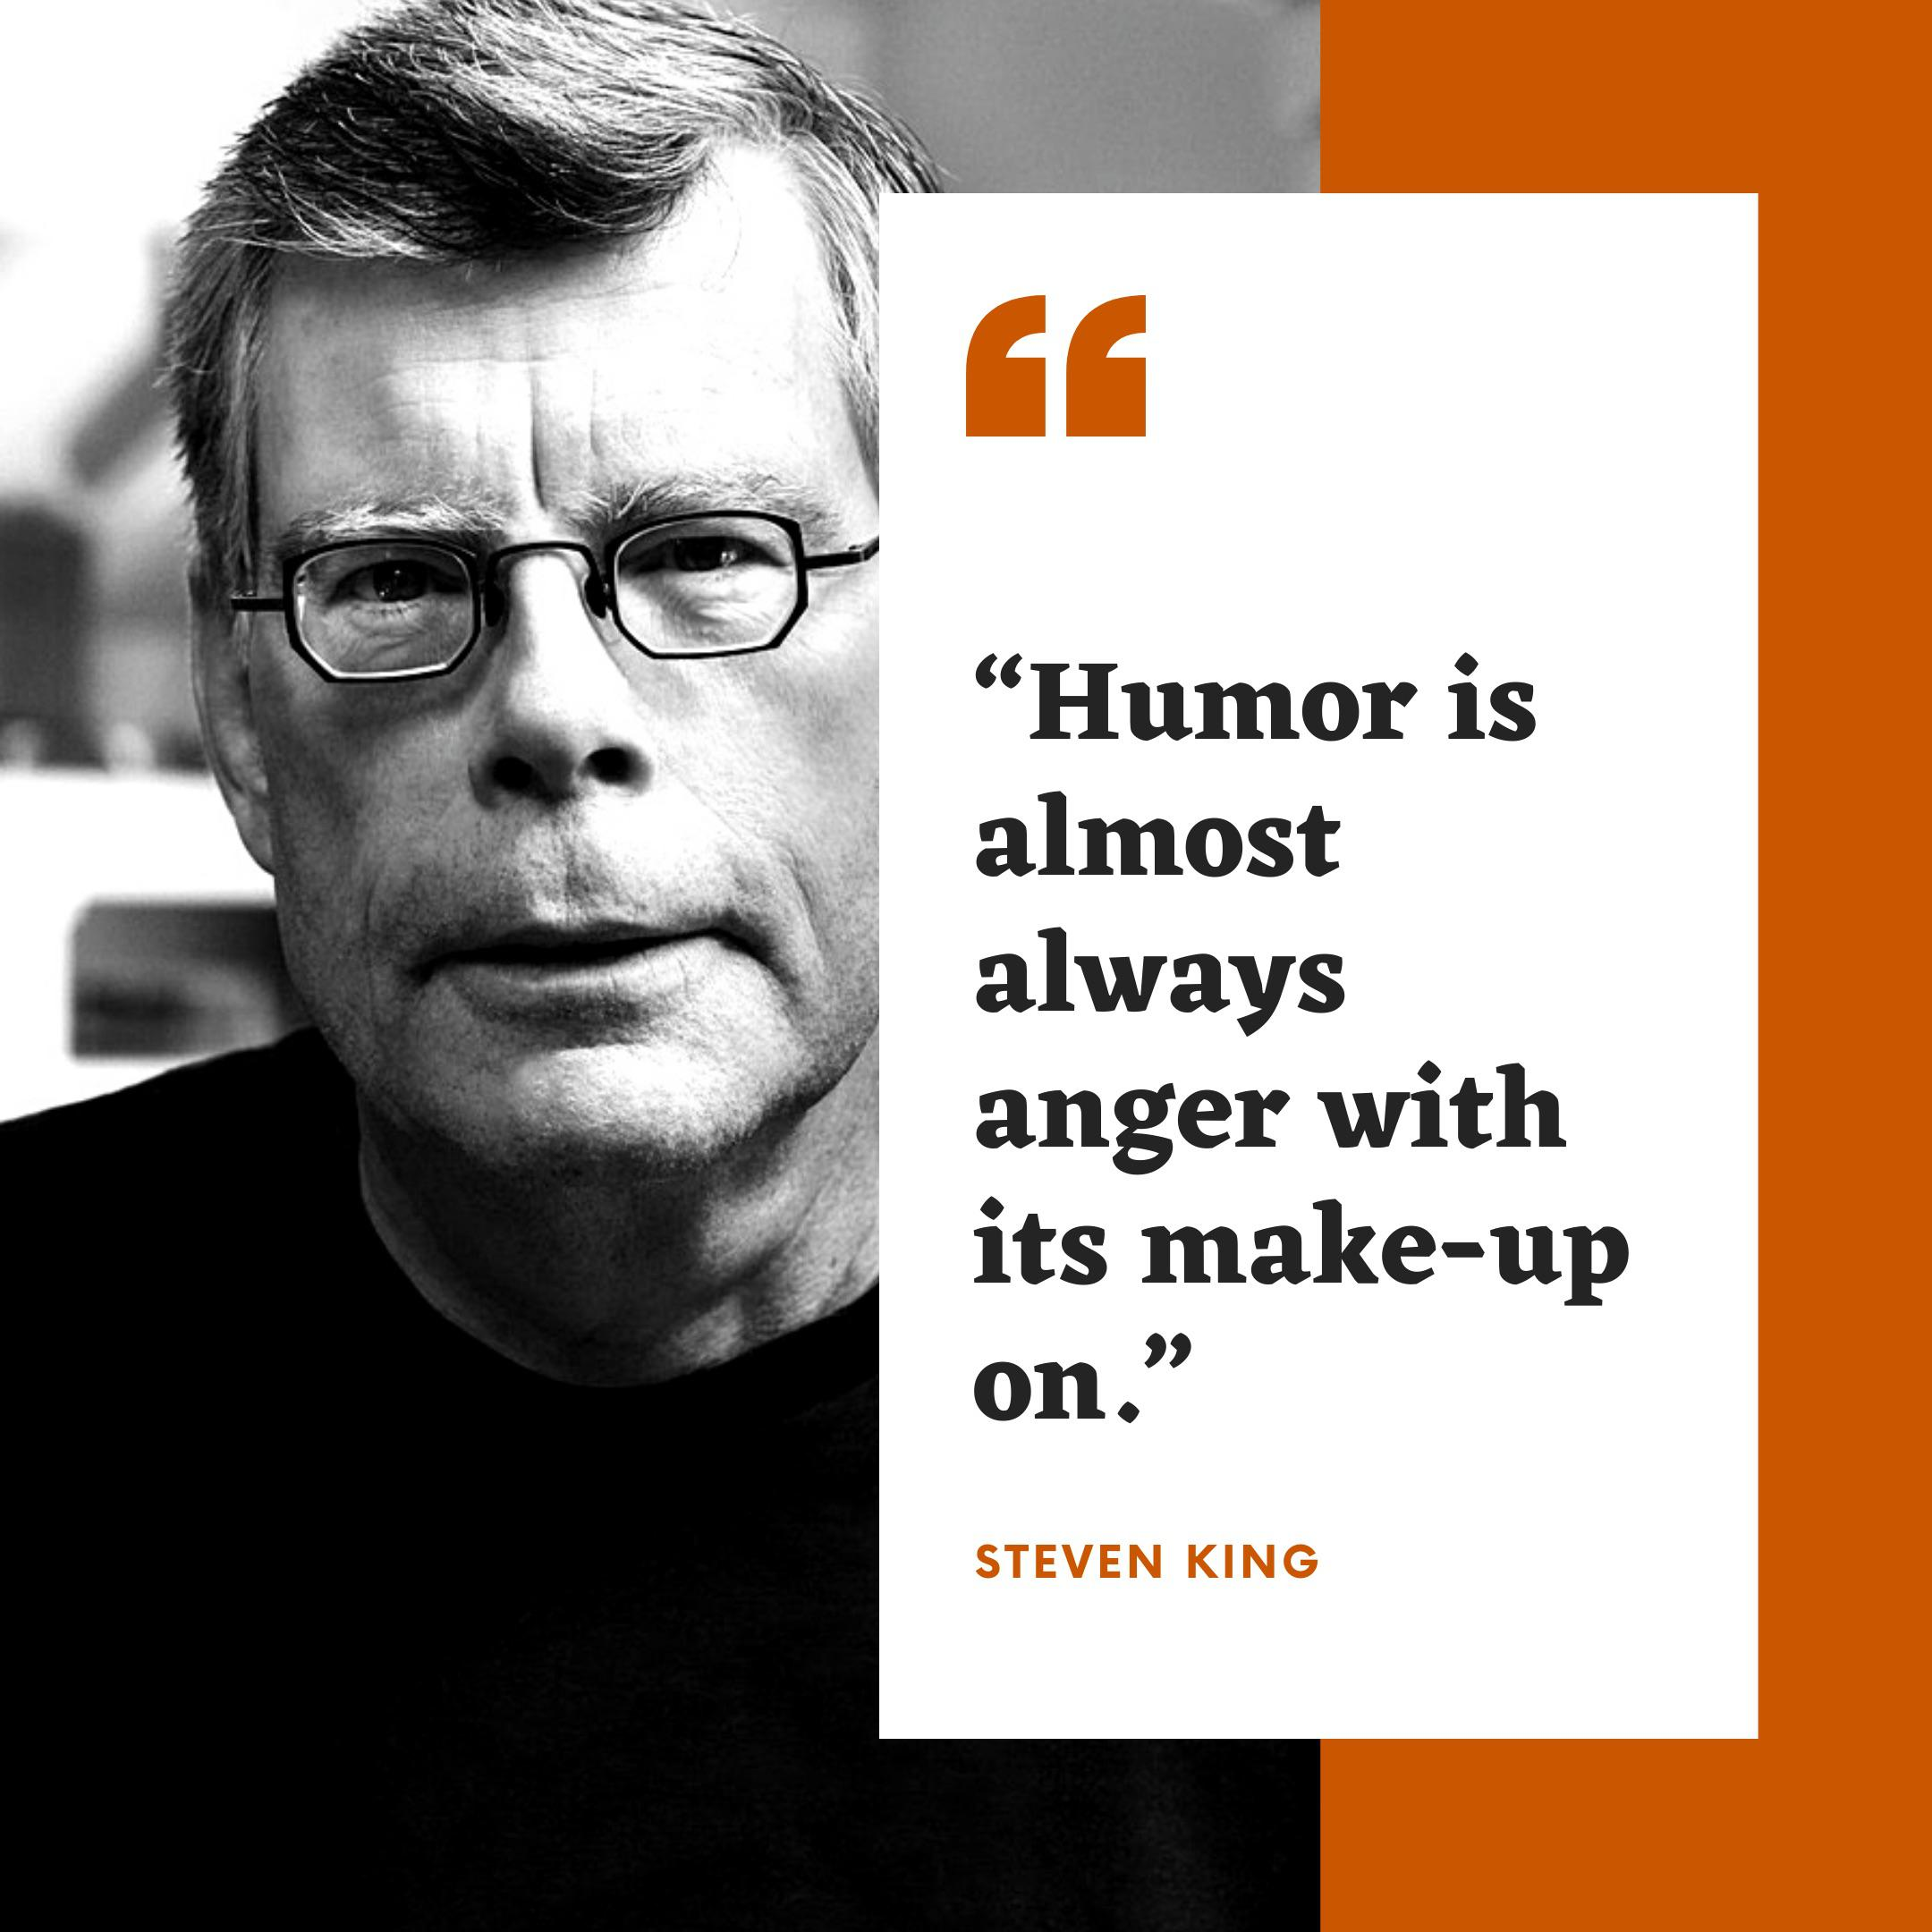 """Humor is almost always anger with its make-up on."" Steven King (800×800)"